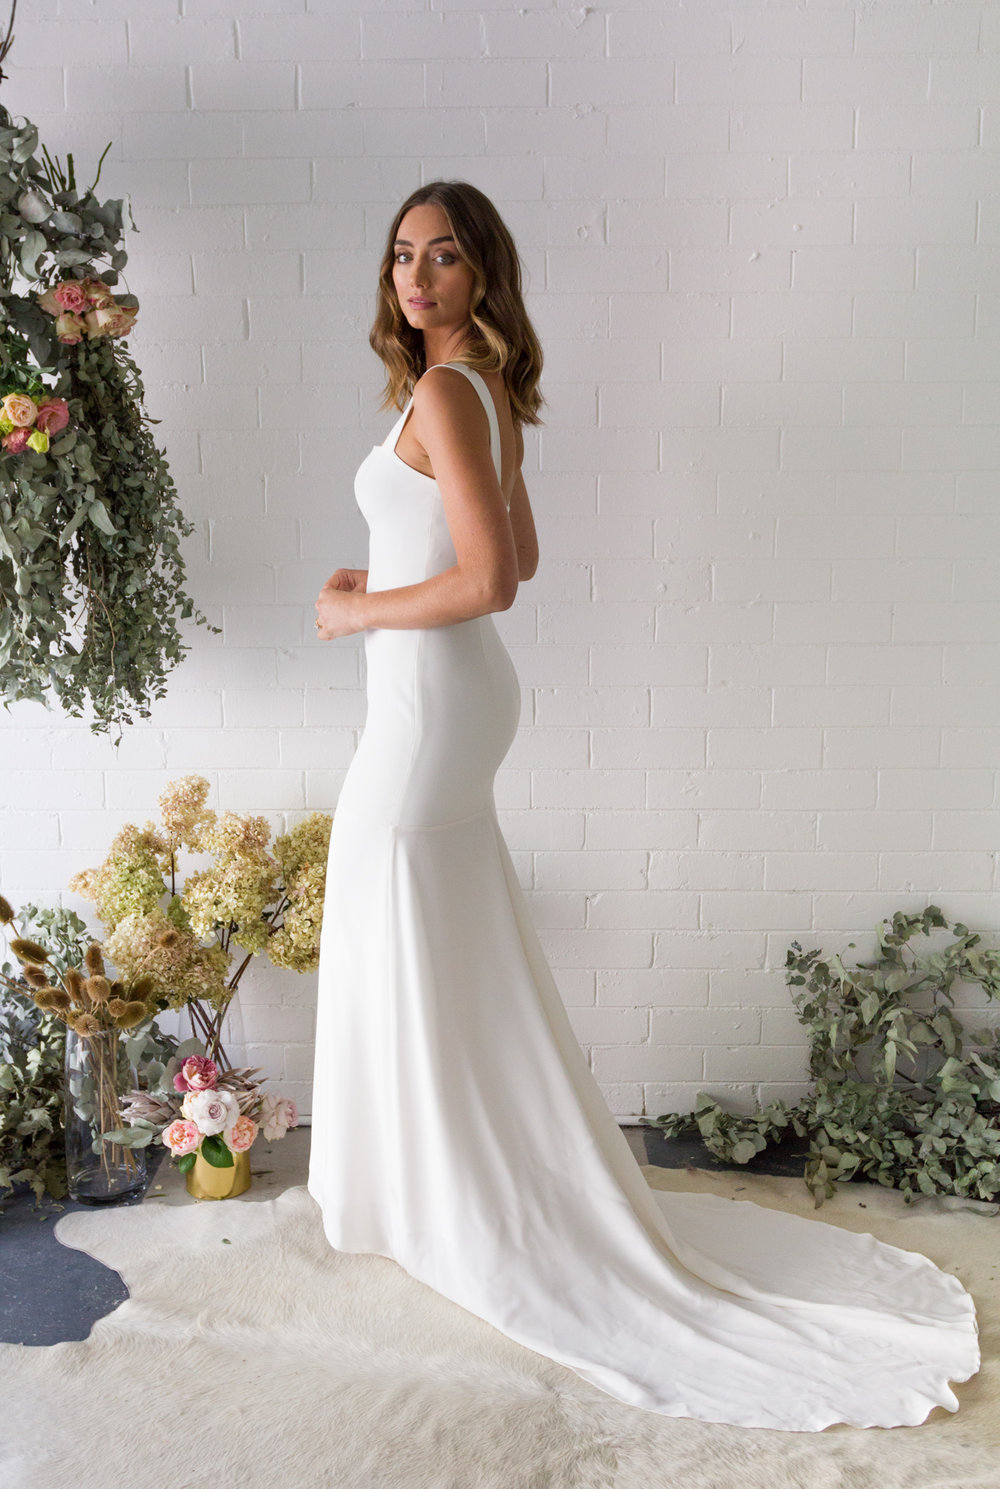 Bridal Designer Fiona Claire featured on the LOVE FIND CO. Dress Concierge